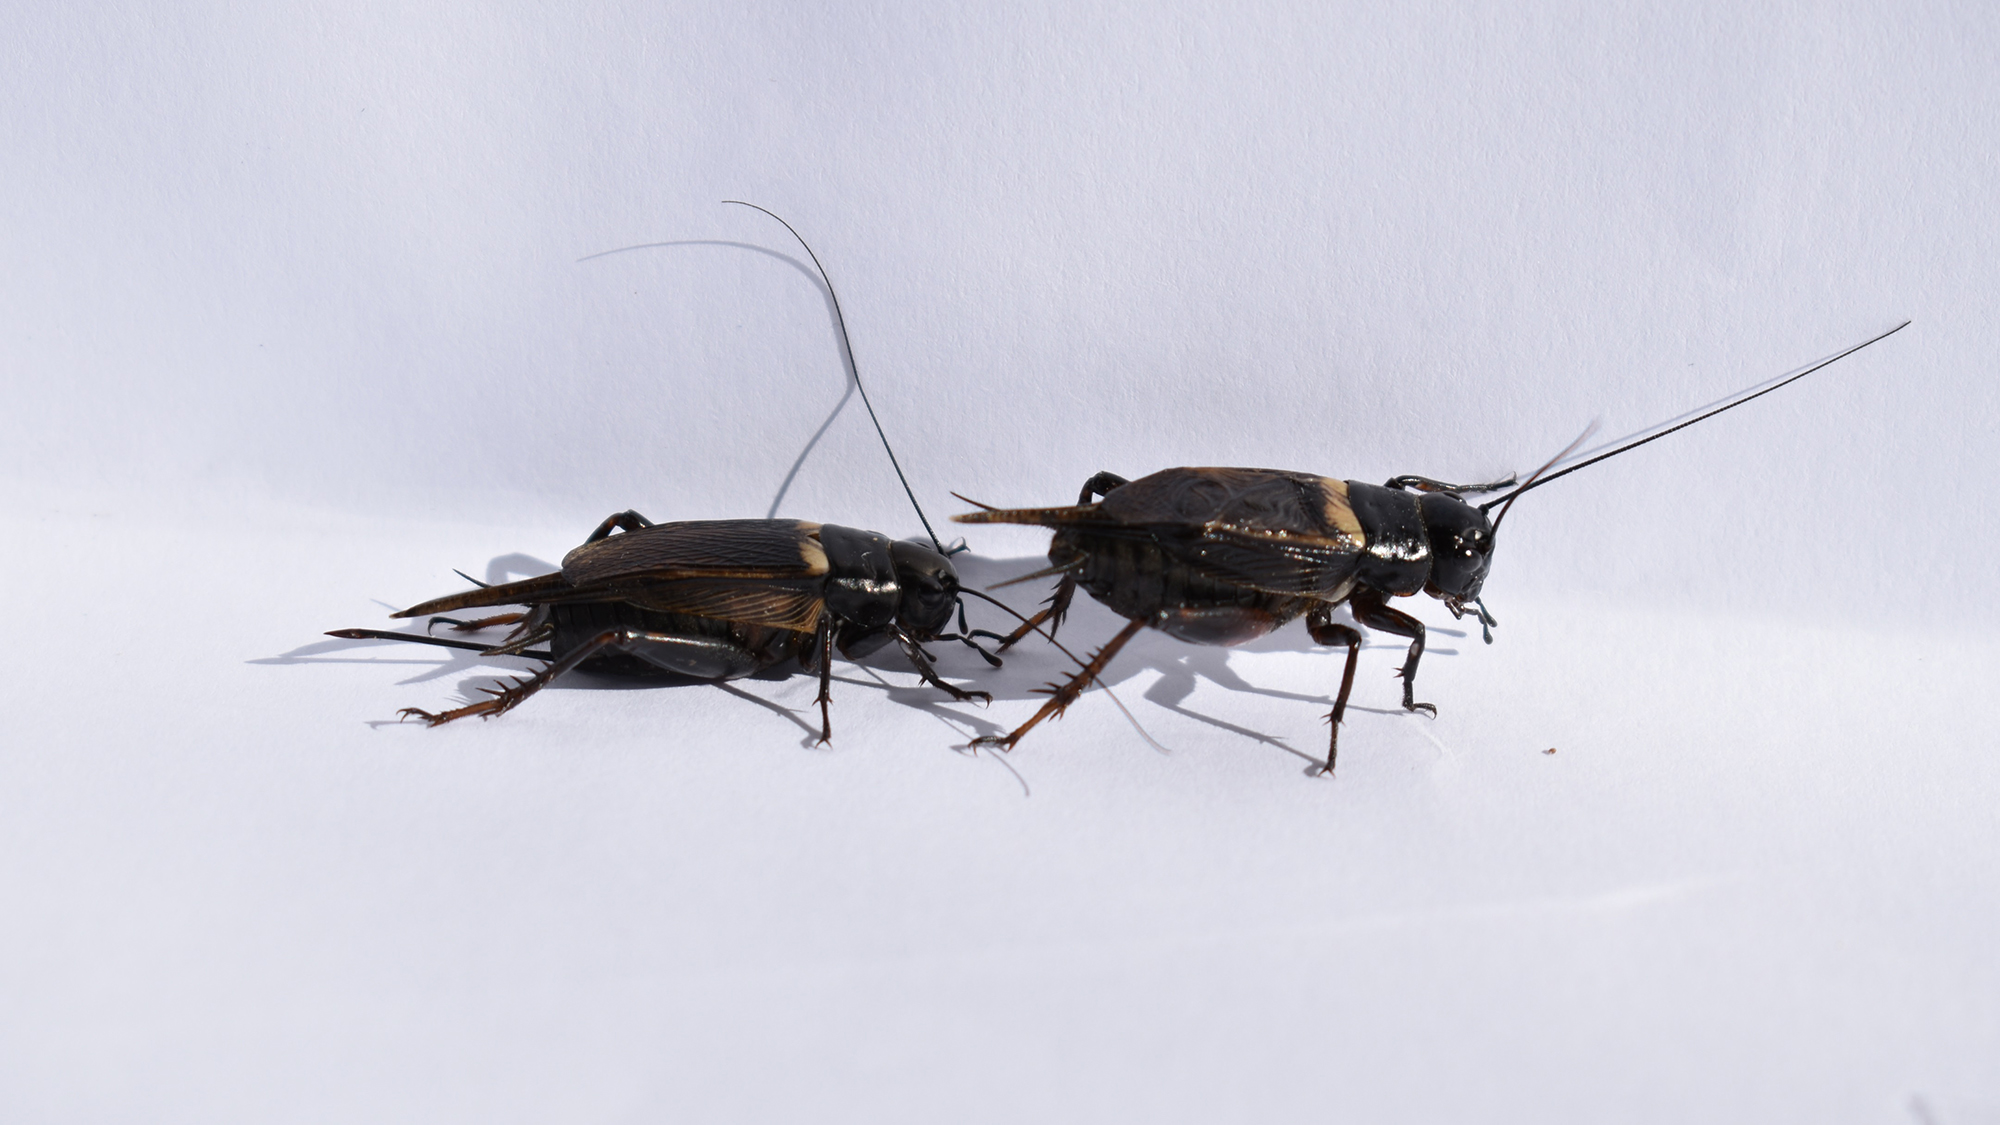 In the name of cricket sex, humans need to stop making noise